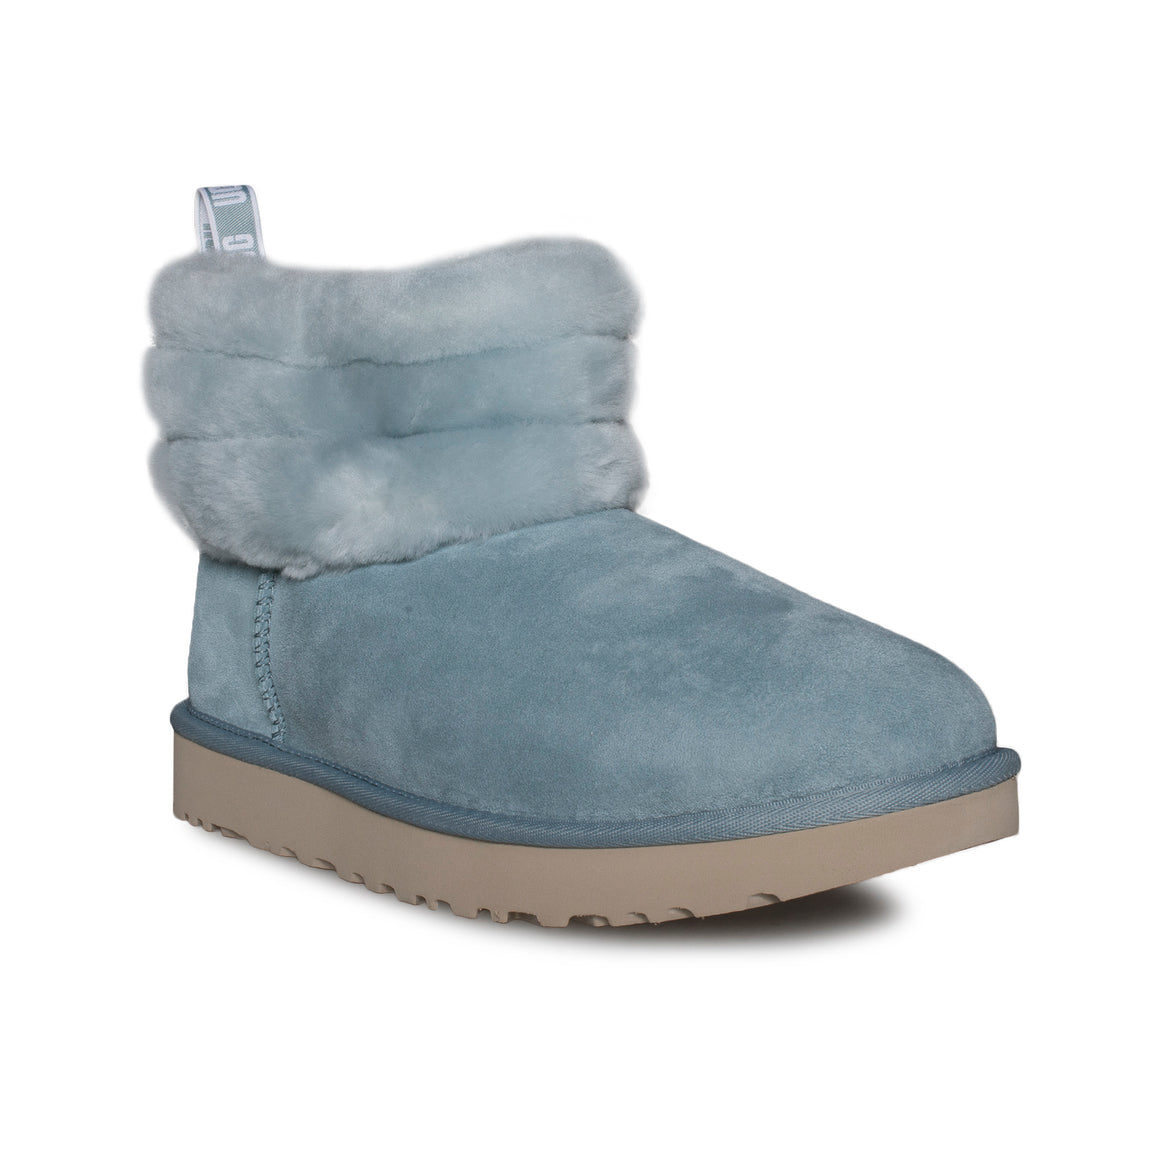 UGG Fluff Mini Quilted Succulent Boots - Women's